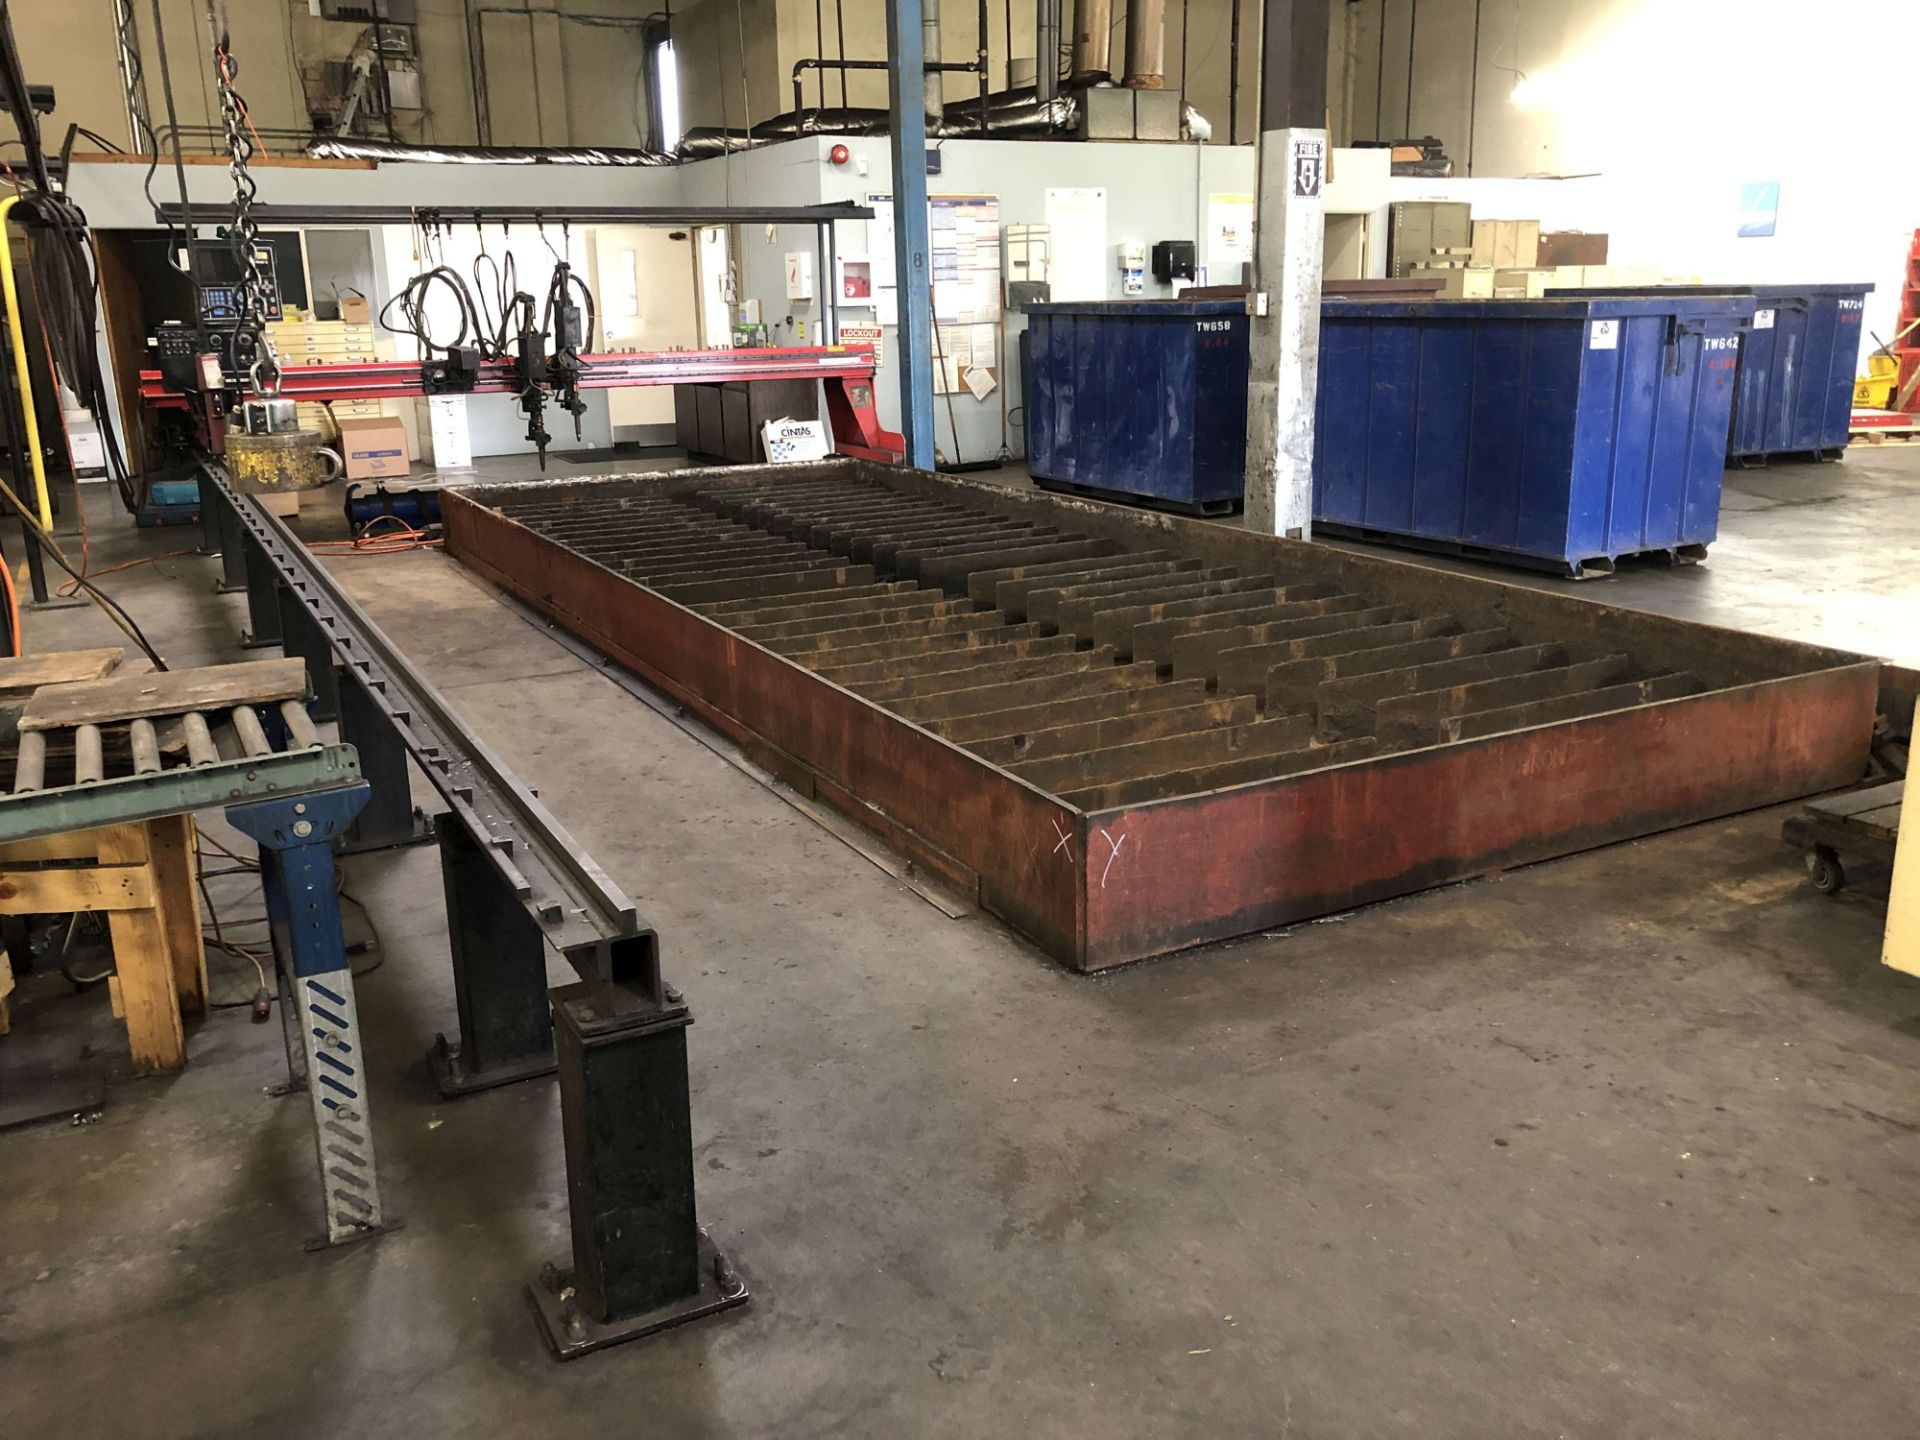 Lot 48 - 1993 MG Industries 10' x 25' CNC Plasma/Oxy Cutting System, Model Apollo HSG-10, Burny 5 CNC